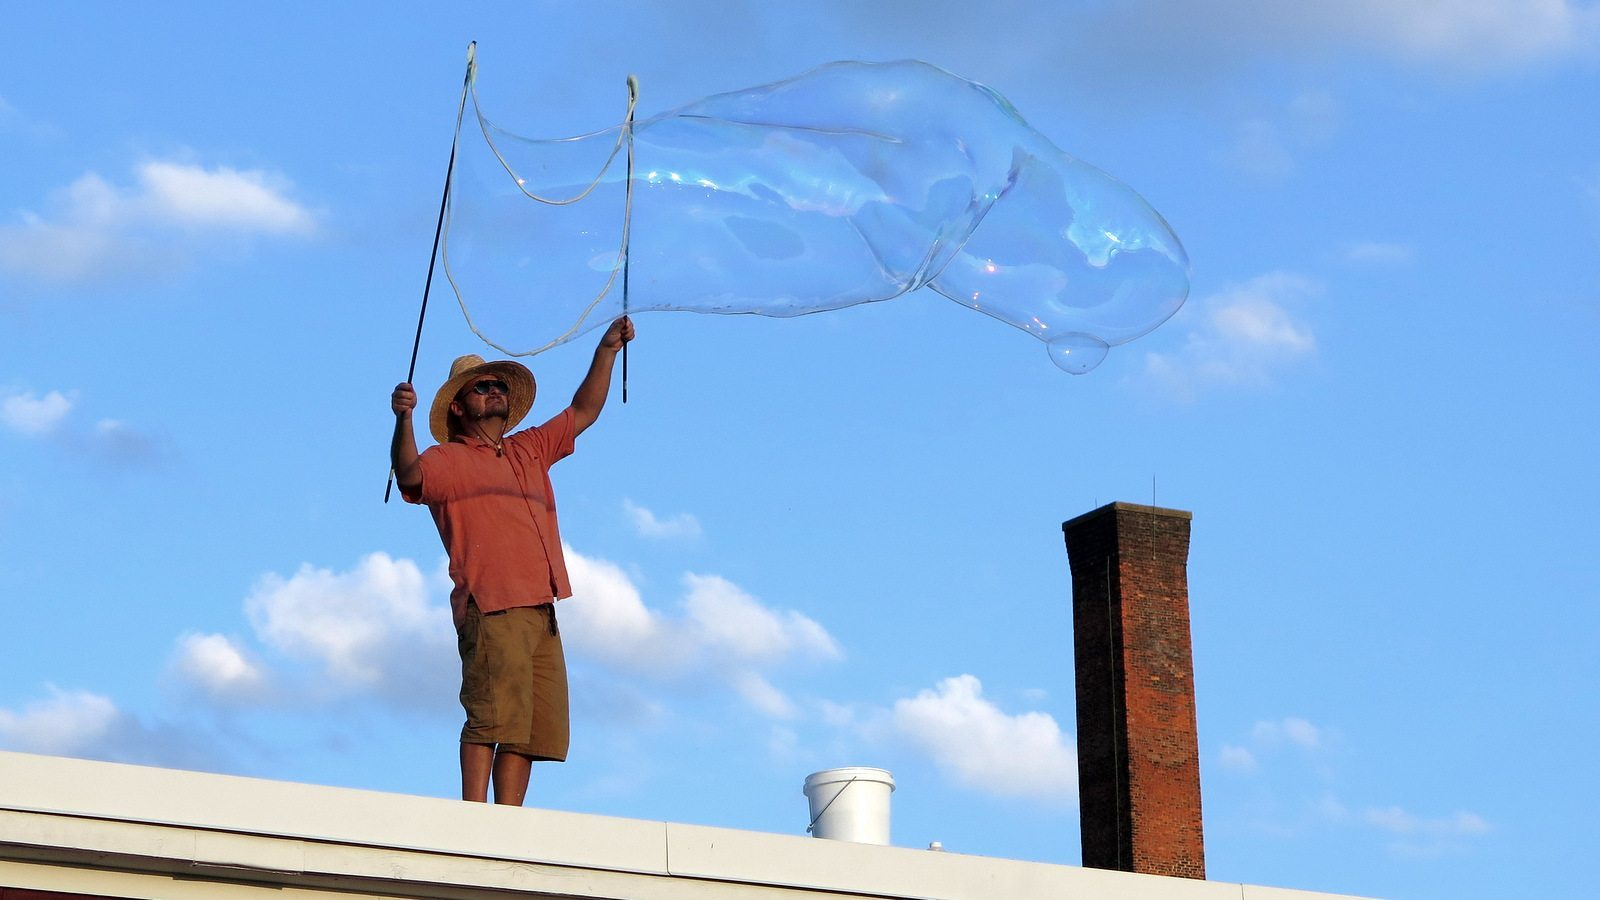 Image: Man on a roof creating a giant soap bubble